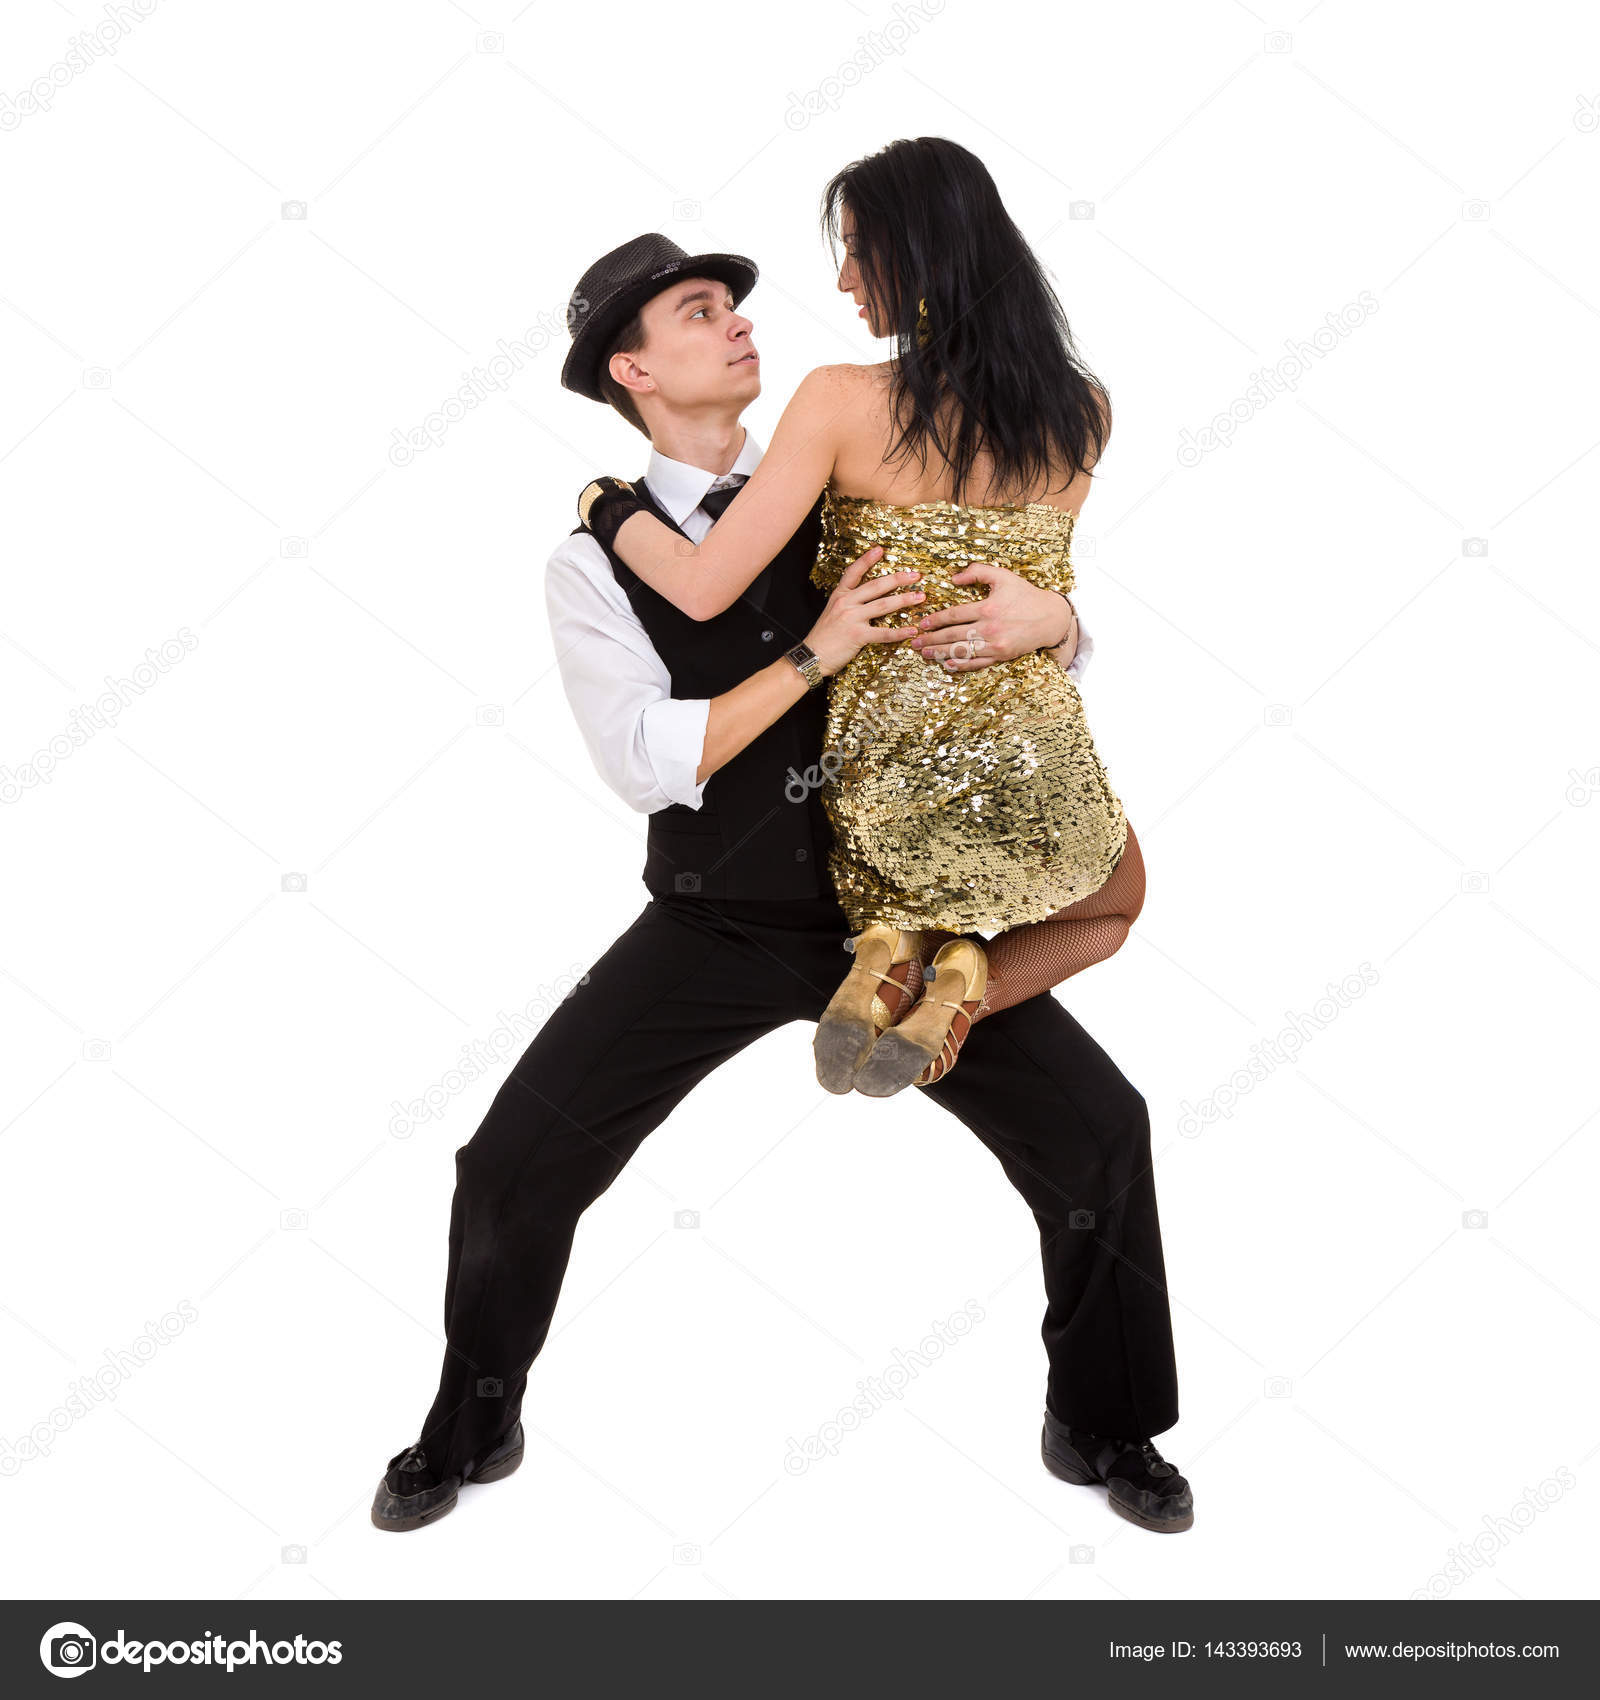 273802a92c243 Cabaret dancer couple dancing. Isolated on white background in full  length.– stock image